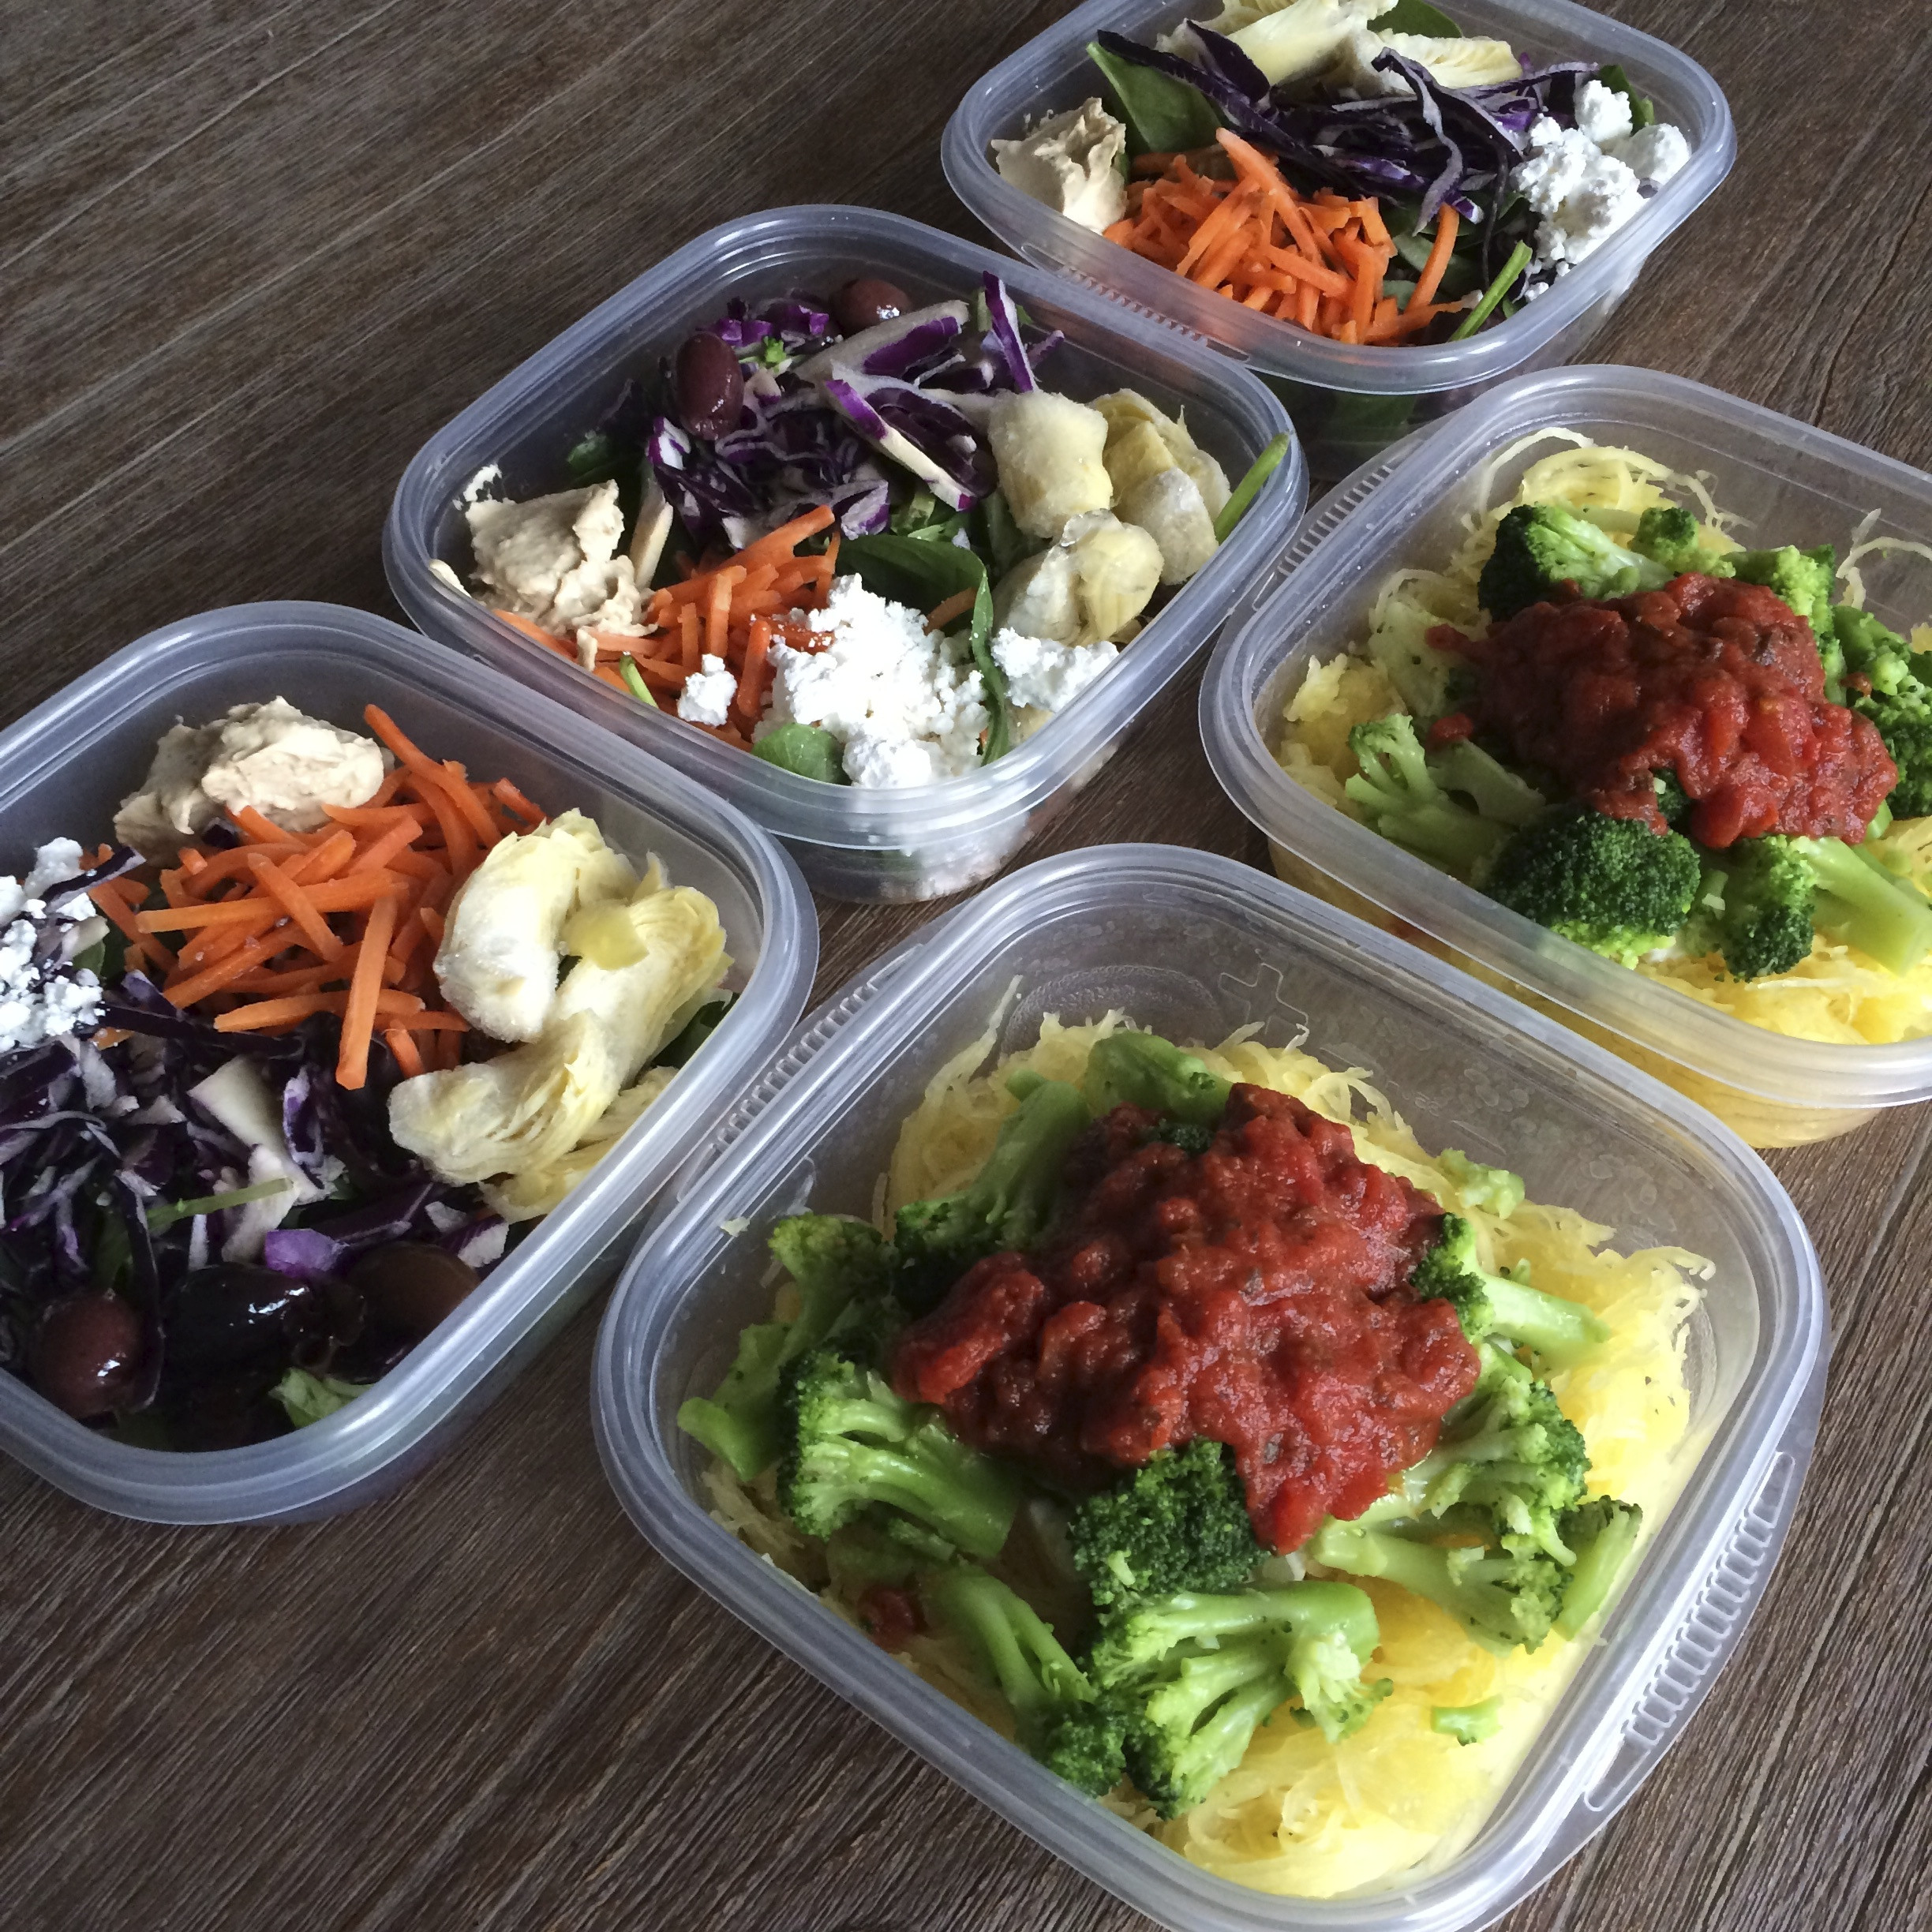 Make Ahead Healthy Lunches  Make Ahead Lunches